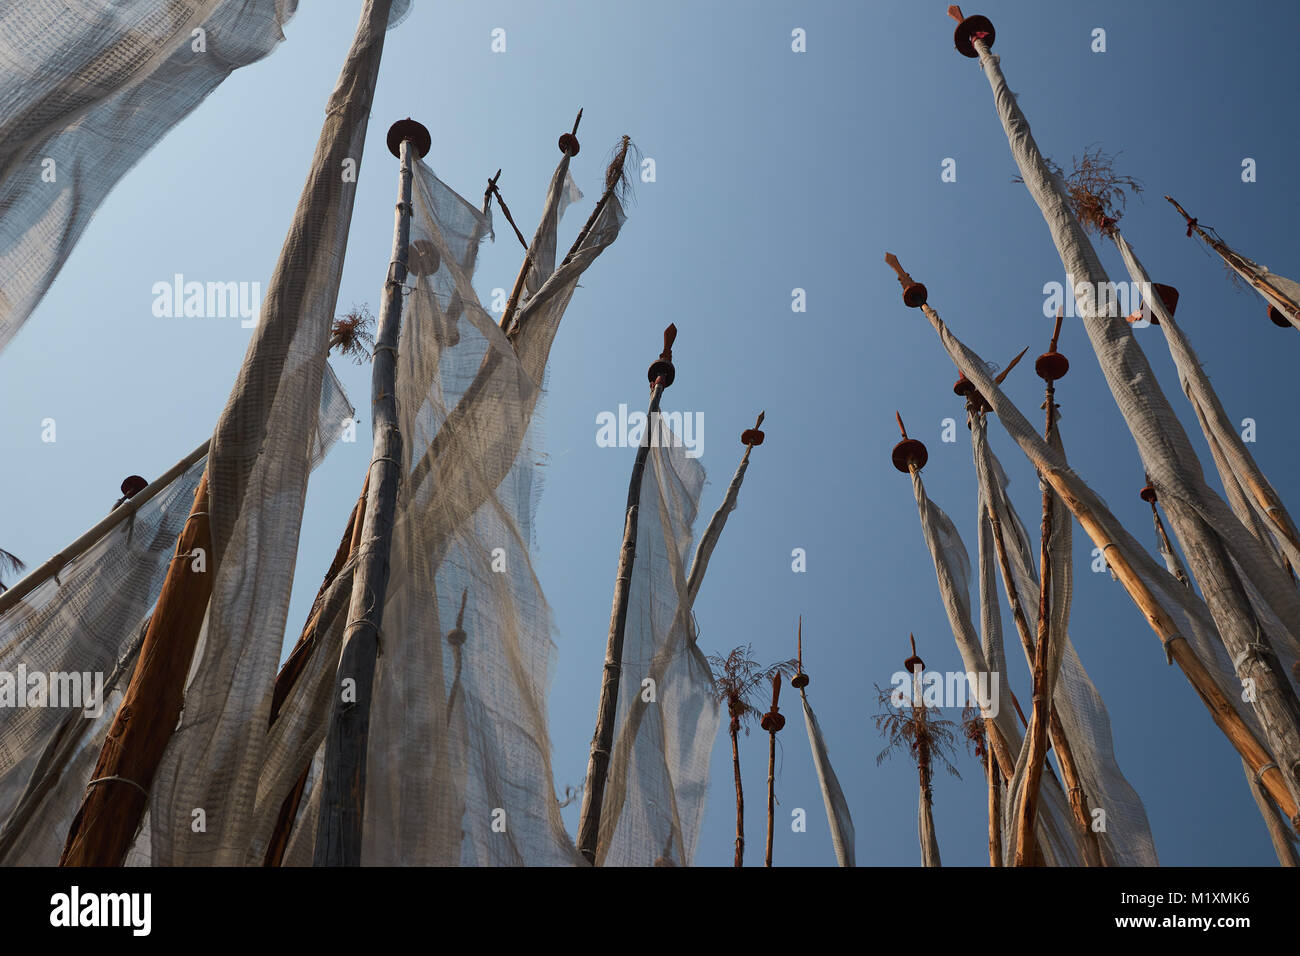 Prayer poles in Bhutan - Stock Image